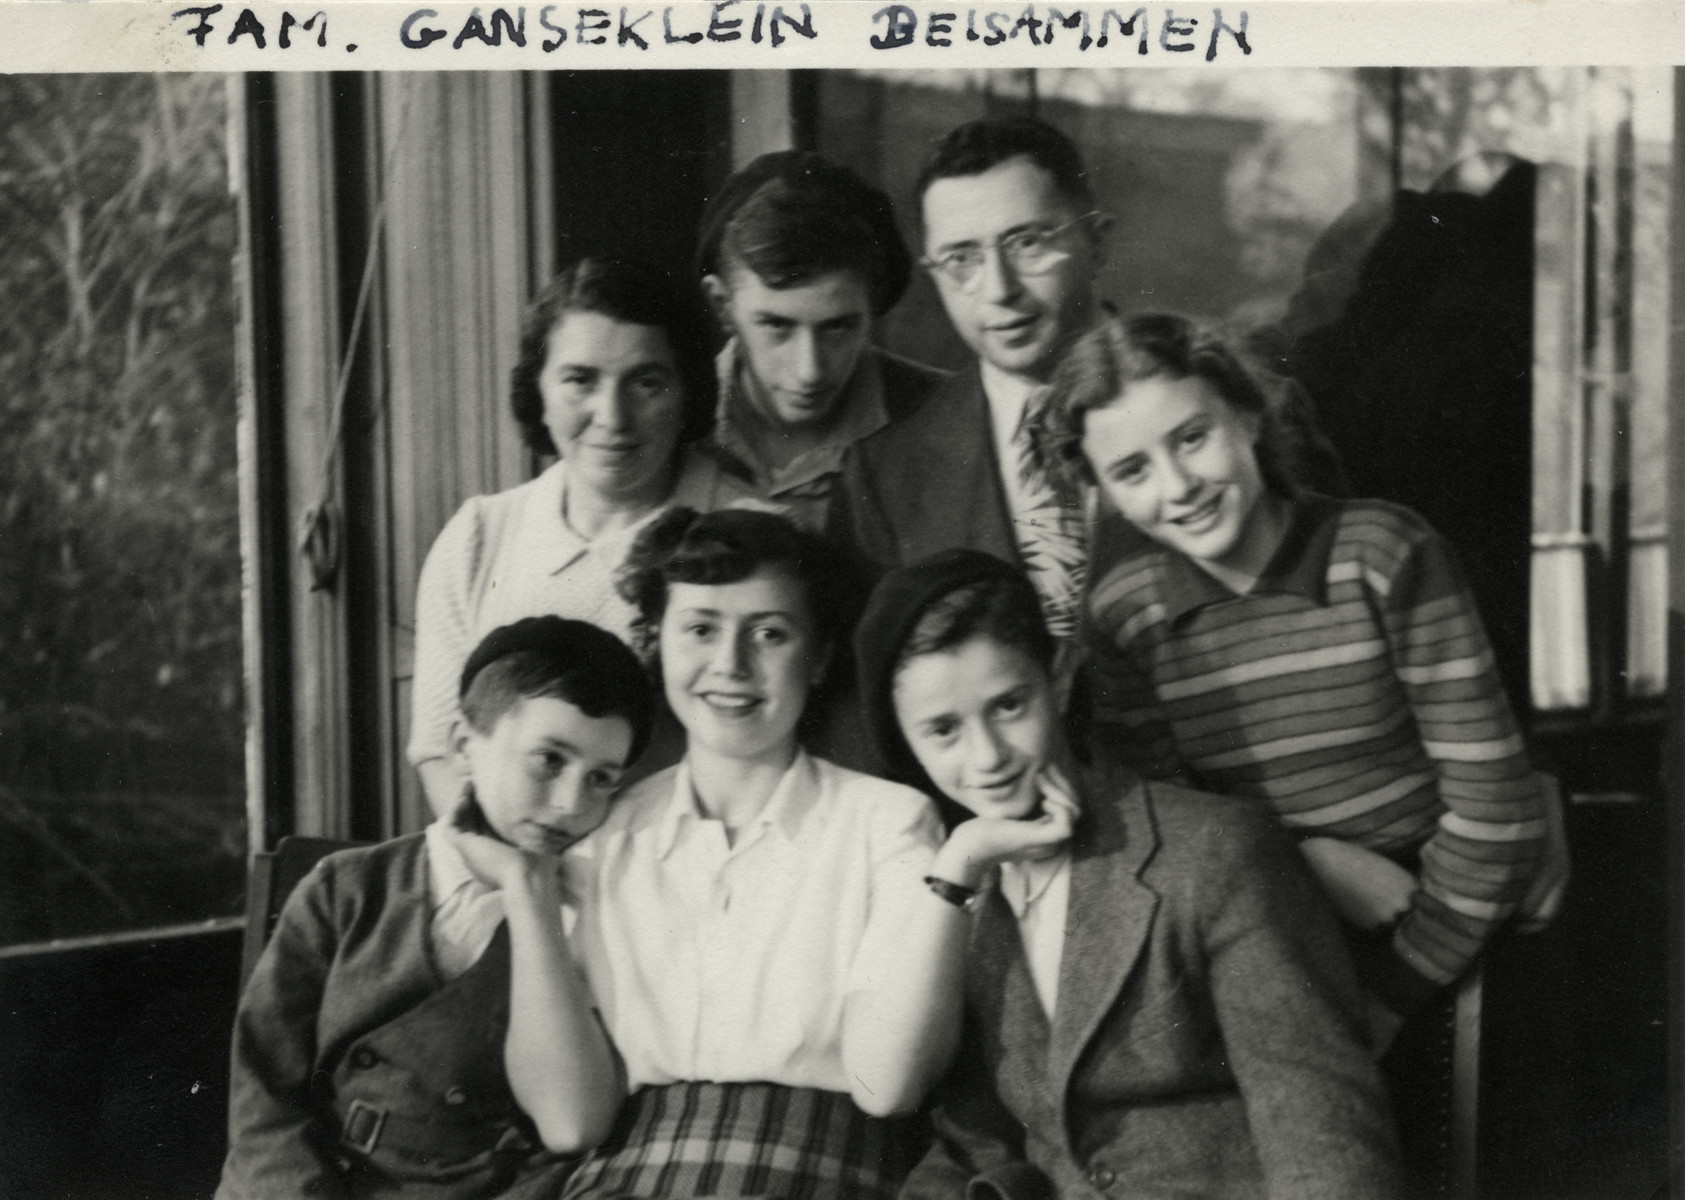 Postwar portrait of the Birnbaum family.  Pictured left to right: seated are Schmuel (Sampi), Regina and Zvi. Standing are Hennie, Yaakov, Yehoshua and Suzy.